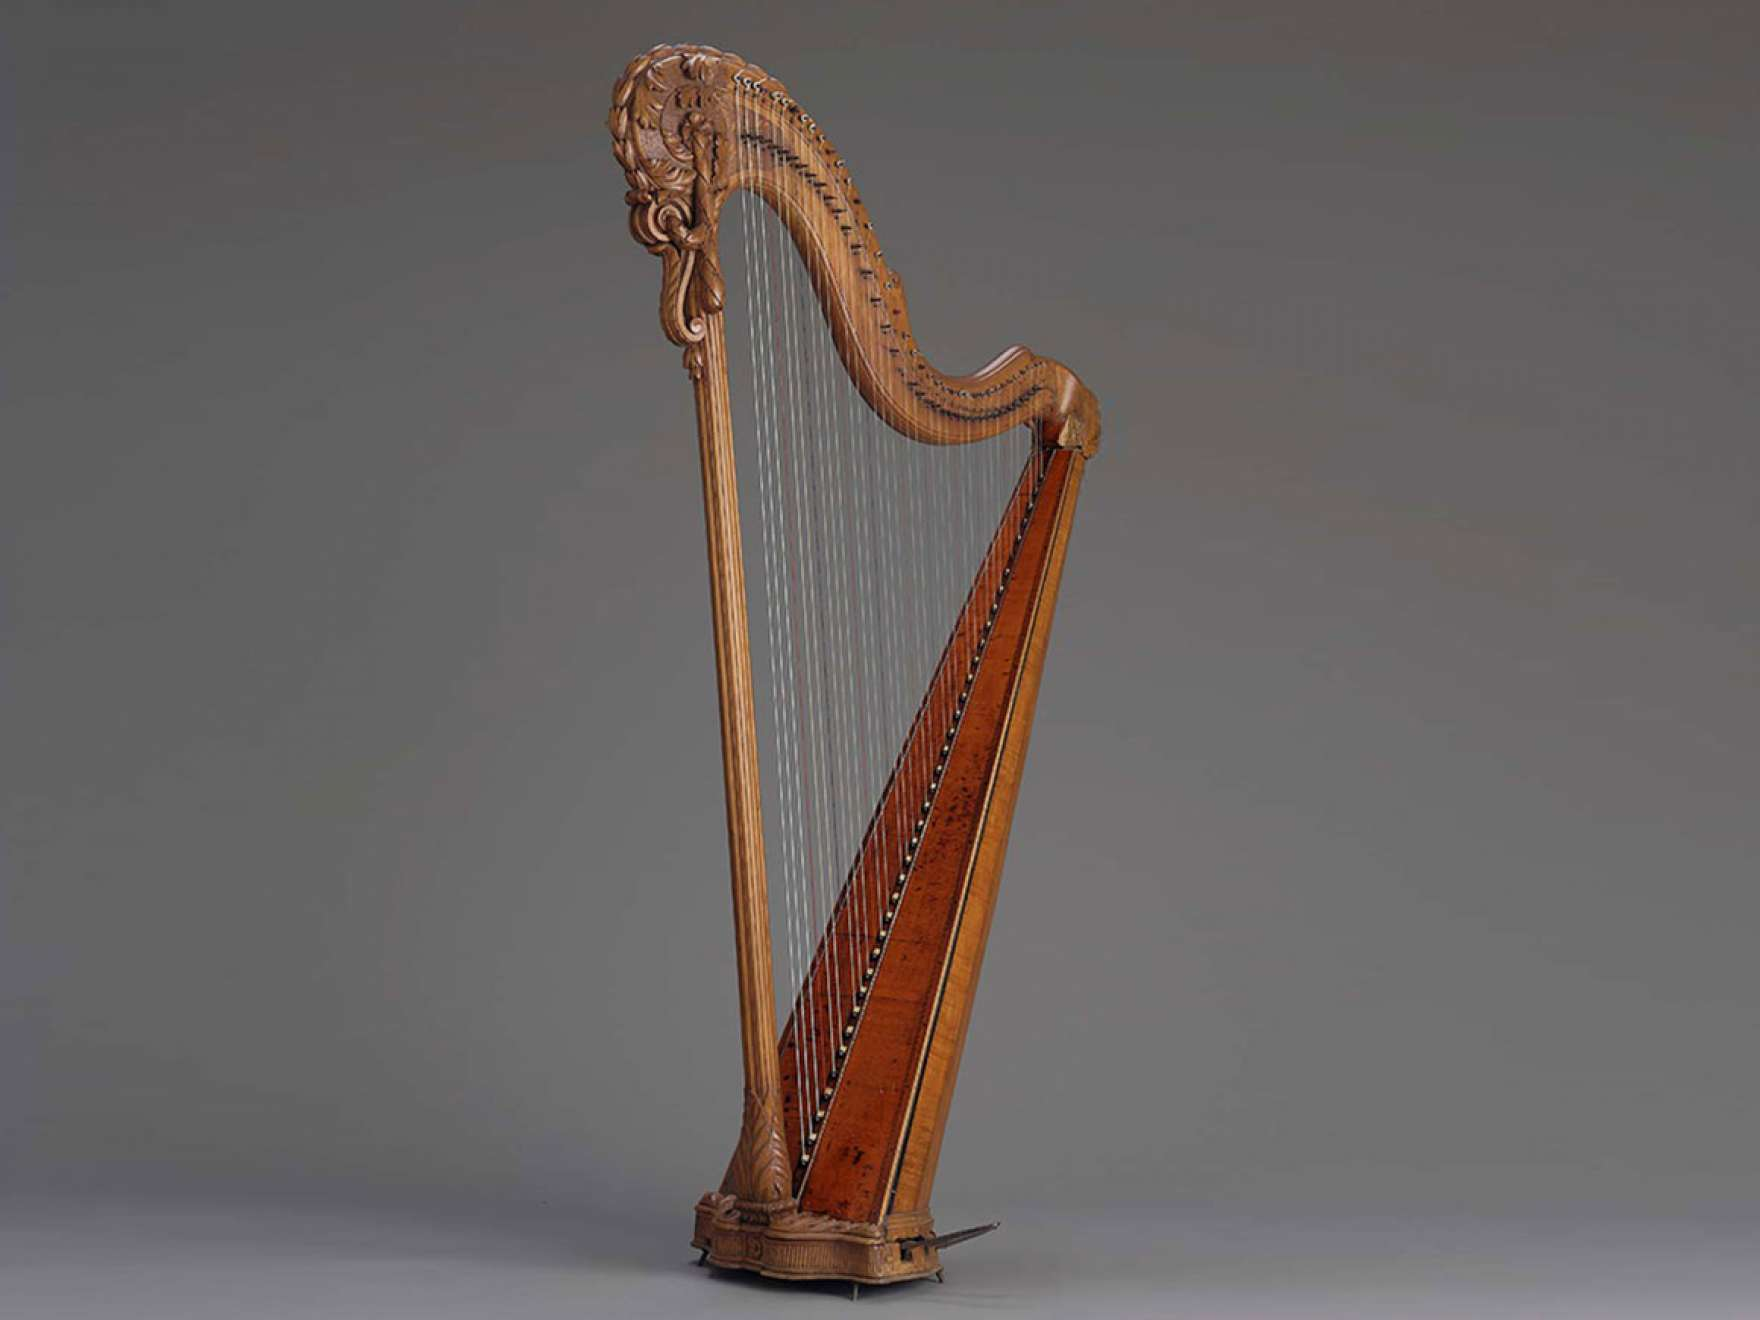 Pedal harp by Jean-Henri Naderman